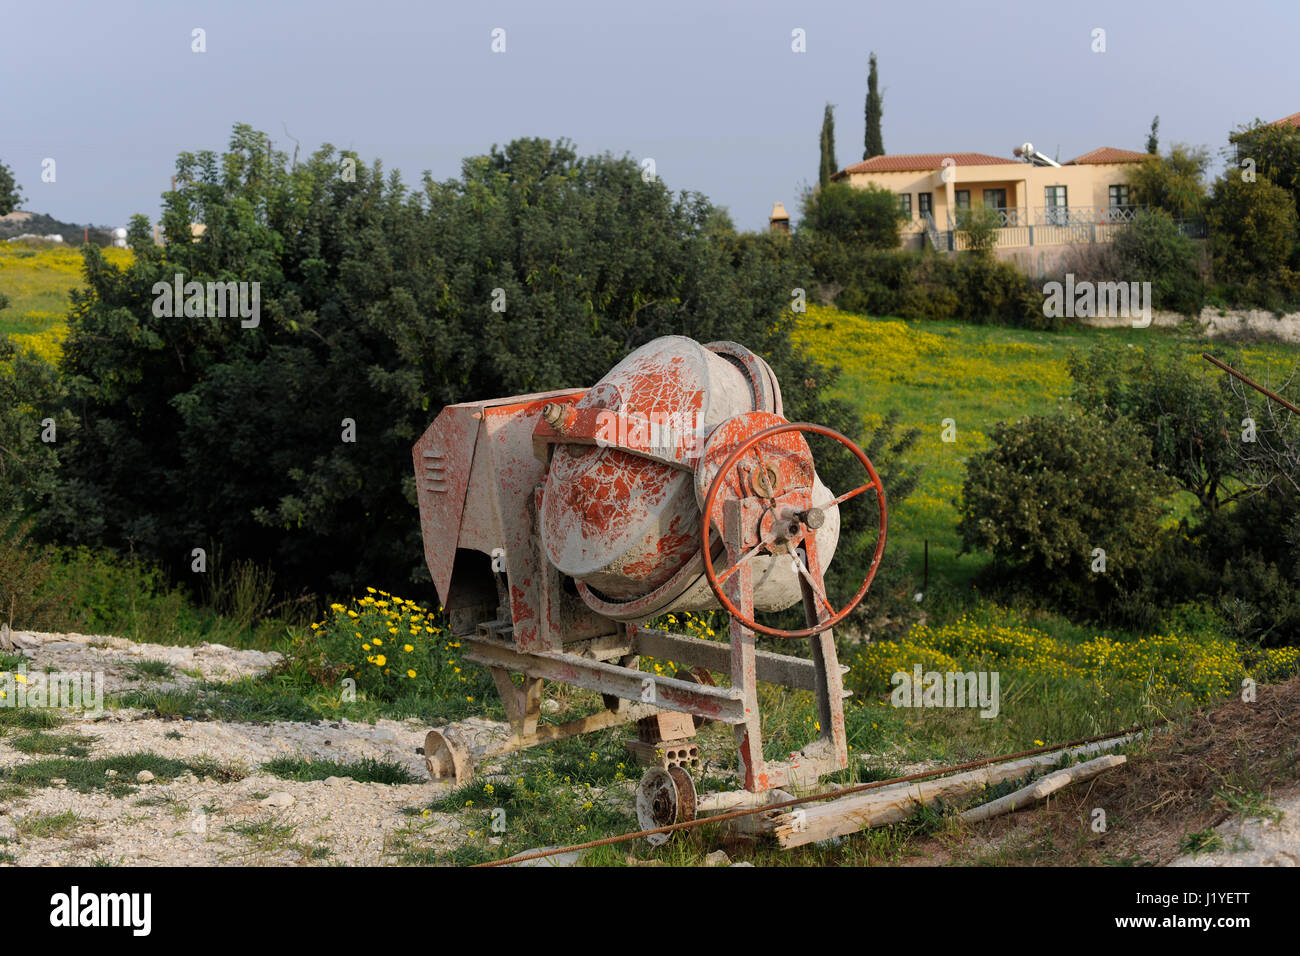 Concrete Mixer Stock Photos Concrete Mixer Stock Images